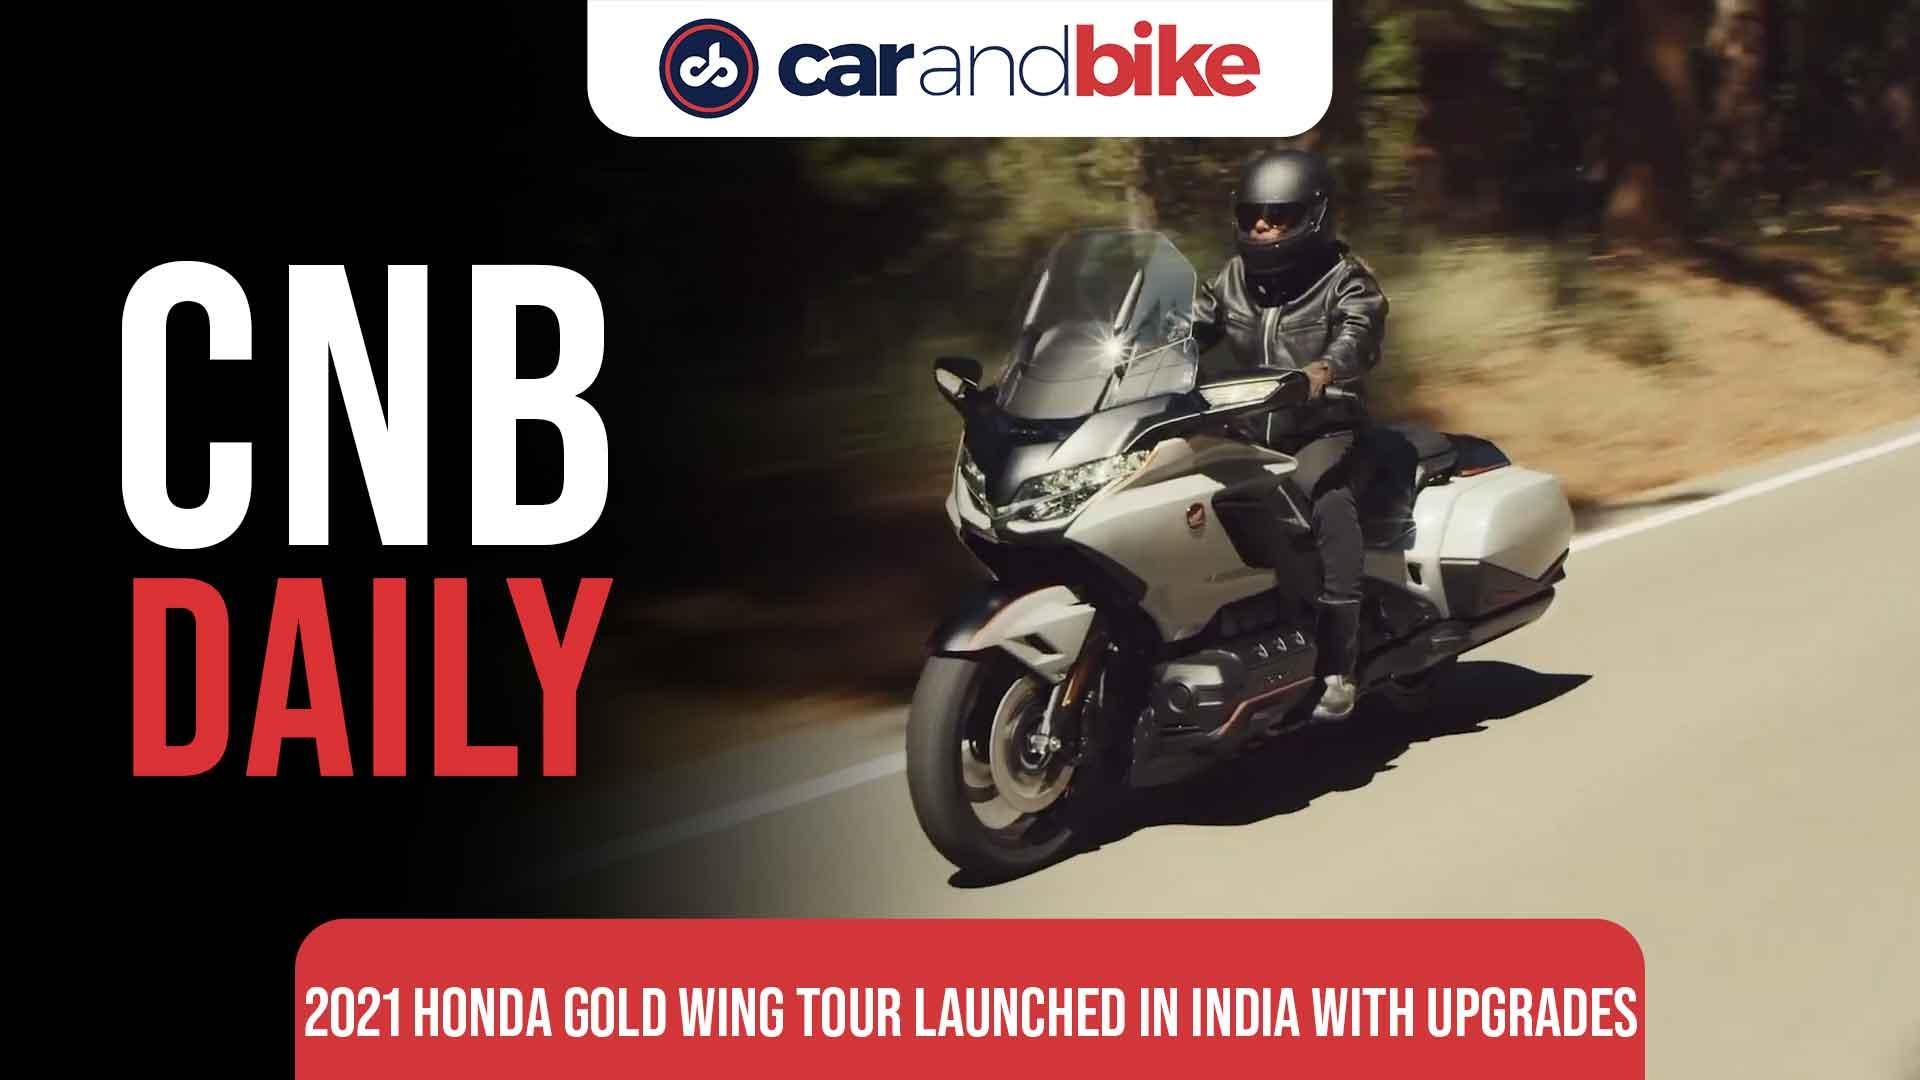 2021 Honda Gold Wing Tour launched in India